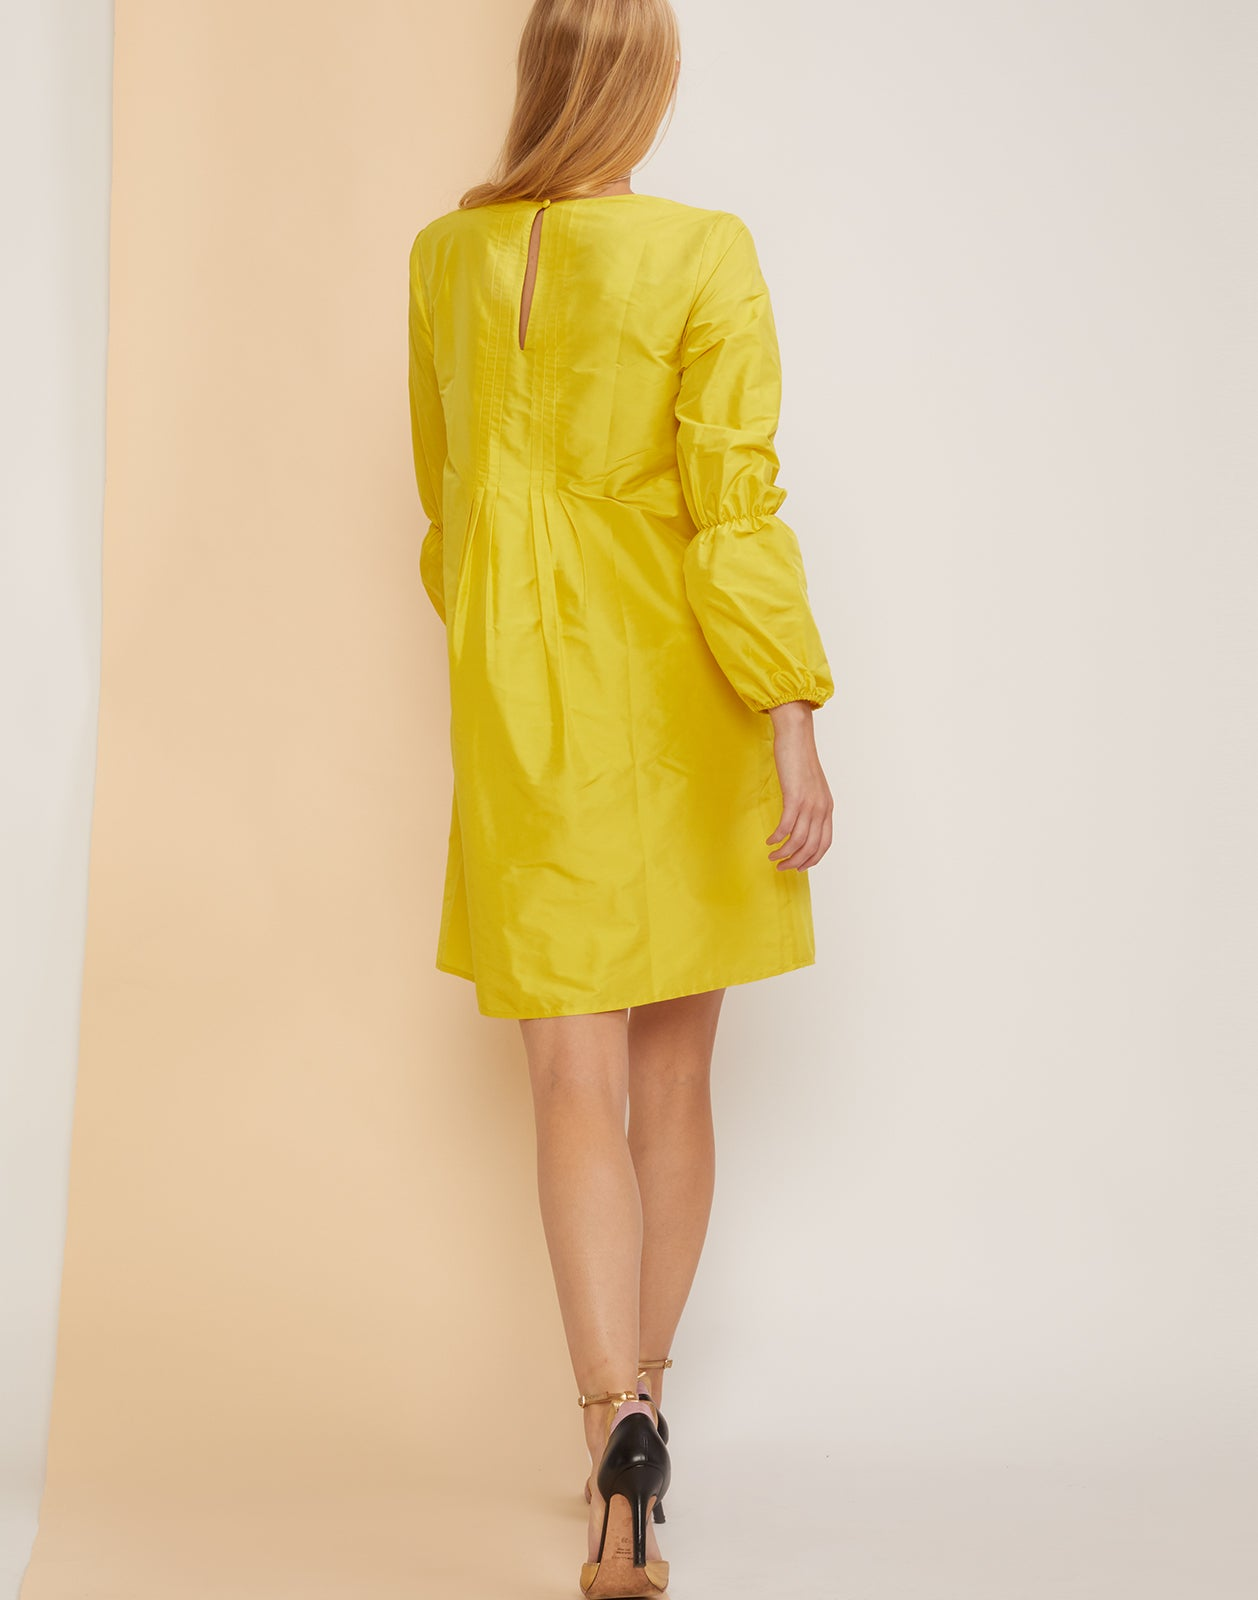 Back view of the Havana Pintuck Dress in Limoncello.